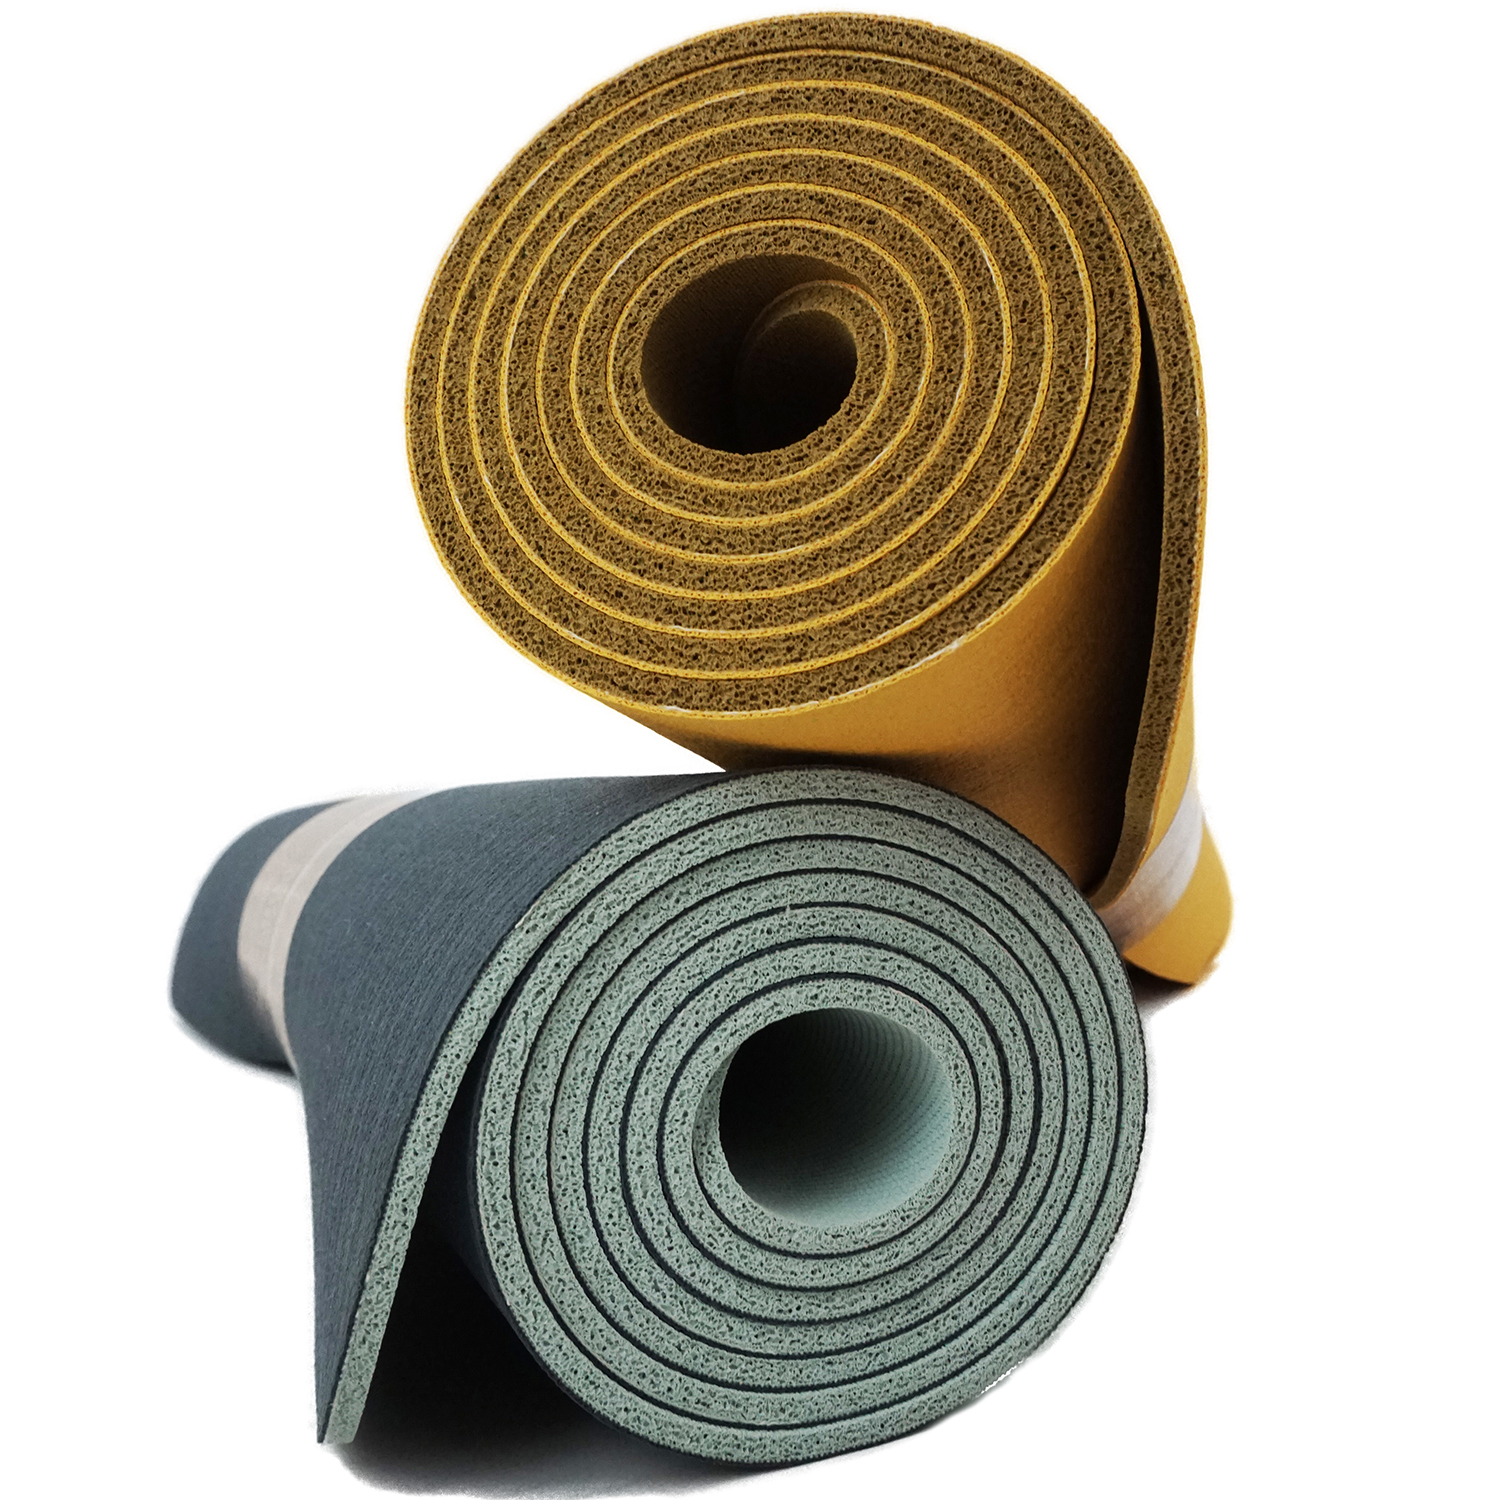 Yoga Accessories Textured Natural Rubber Yoga Mat